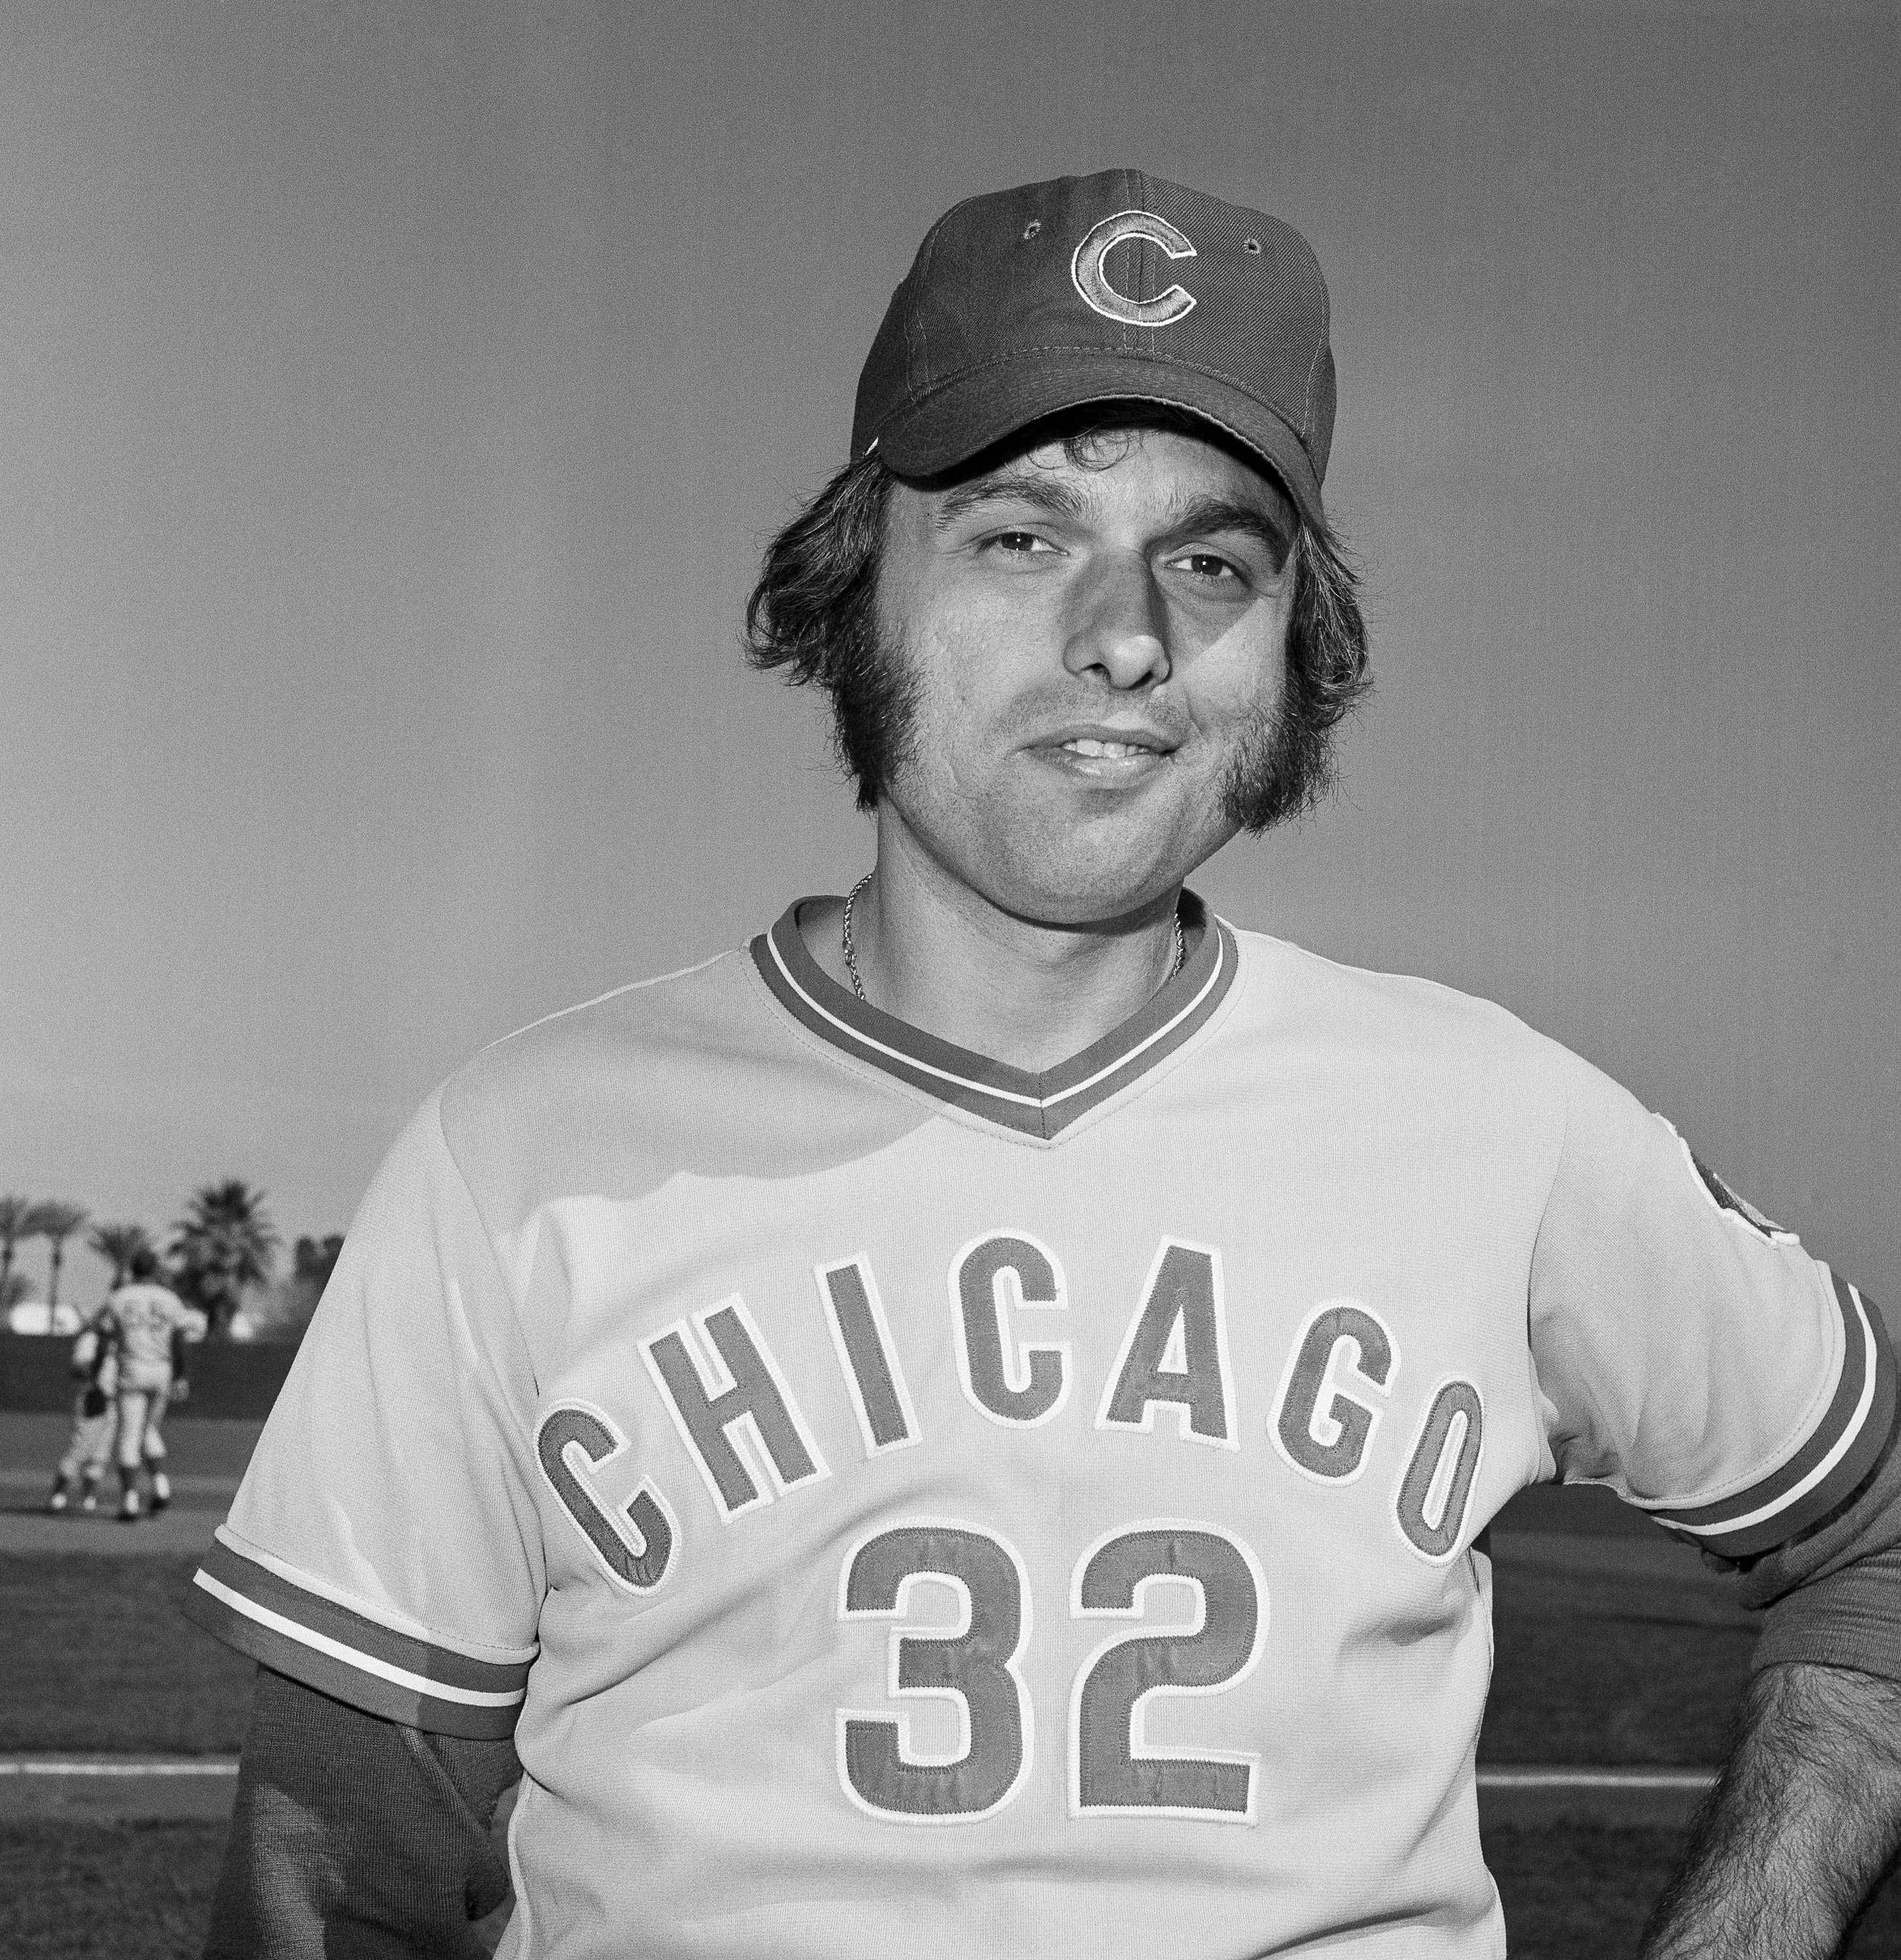 Chicago Cubs pitcher Milt Pappas on March 3, 1973, at spring training.